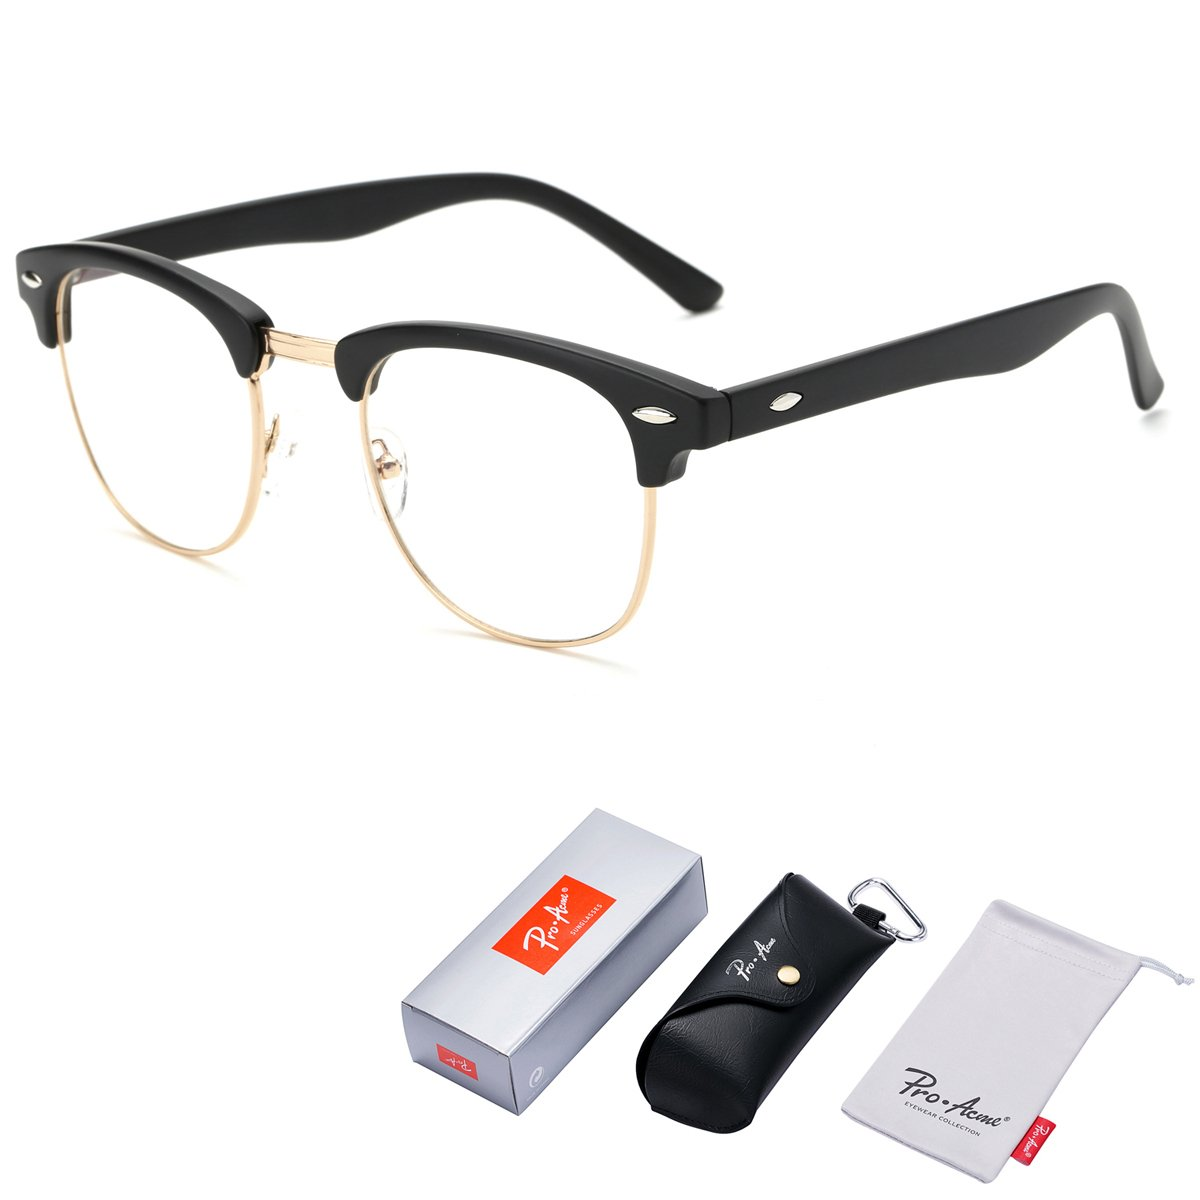 Pro Acme Vintage Inspired Semi-Rimless Clubmaster Clear Lens Glasses Frame Horn Rimmed (Matte Black) by Pro Acme